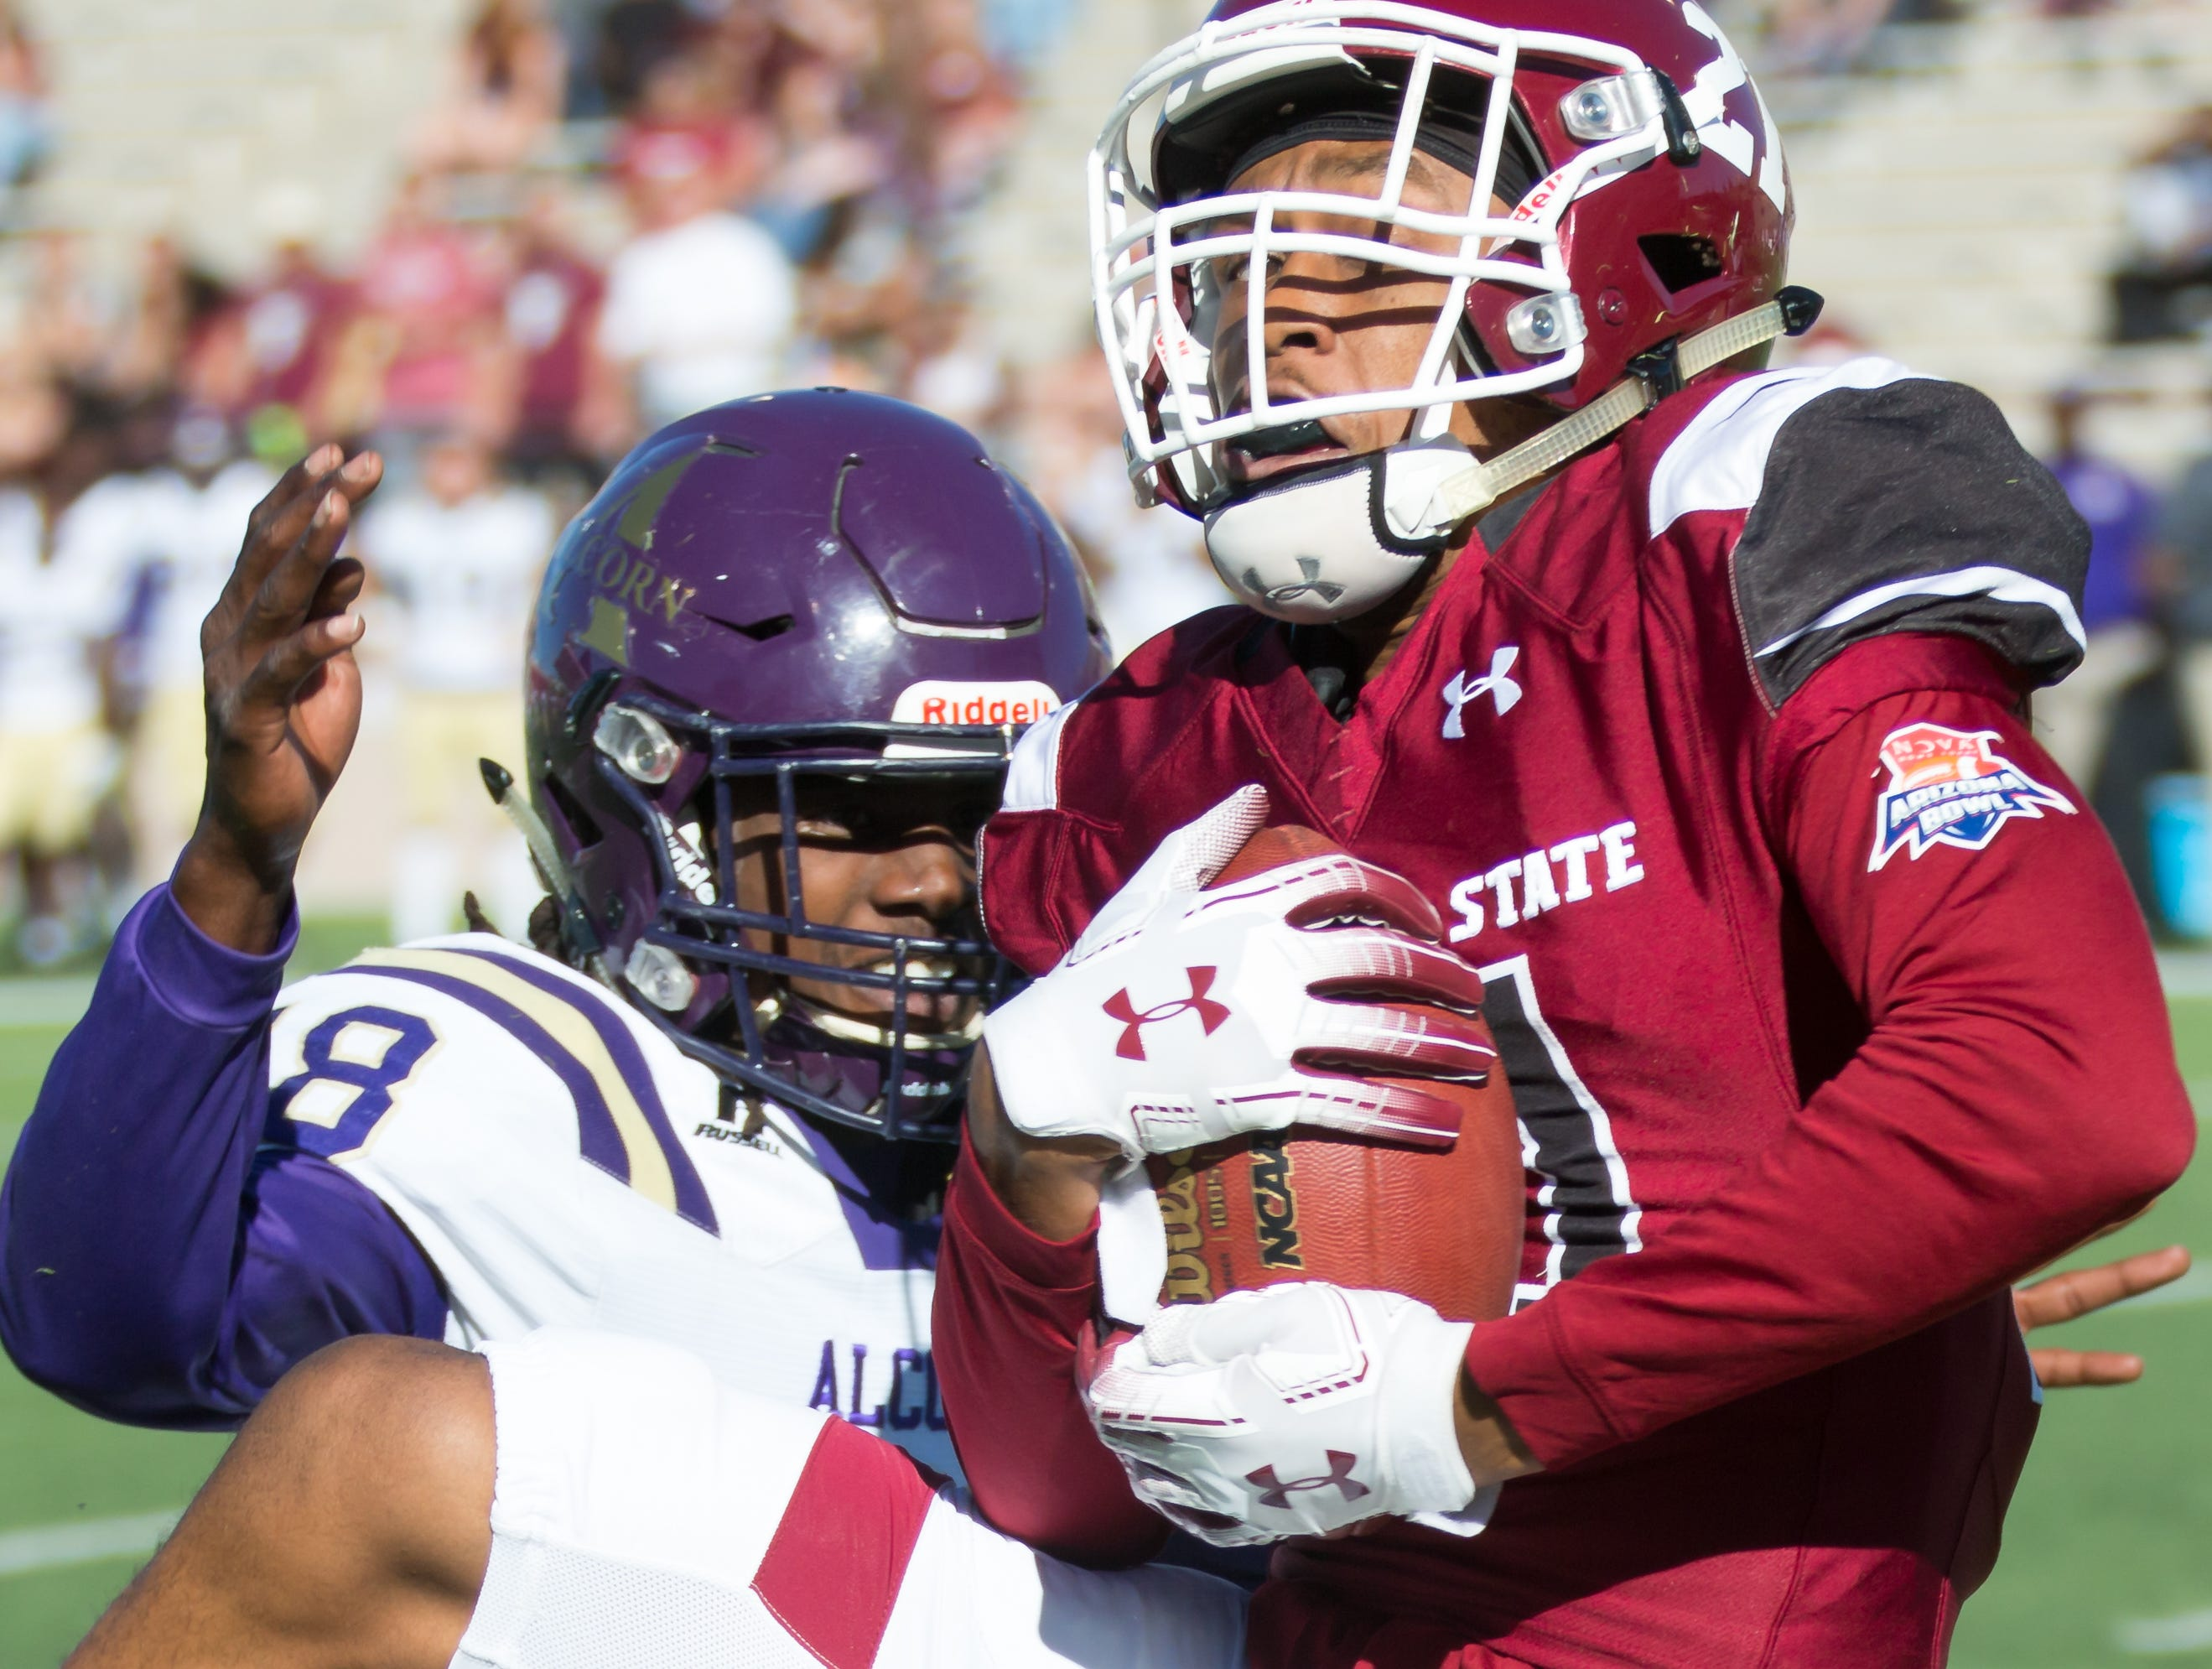 New Mexico State University's wide receiver Anthony Muse holds on the the ball while his Alcorn State opponent Leishaun Ealey tries to make the tackle on Saturday, Nov. 3, 2018 at Aggie Memorial Stadium,